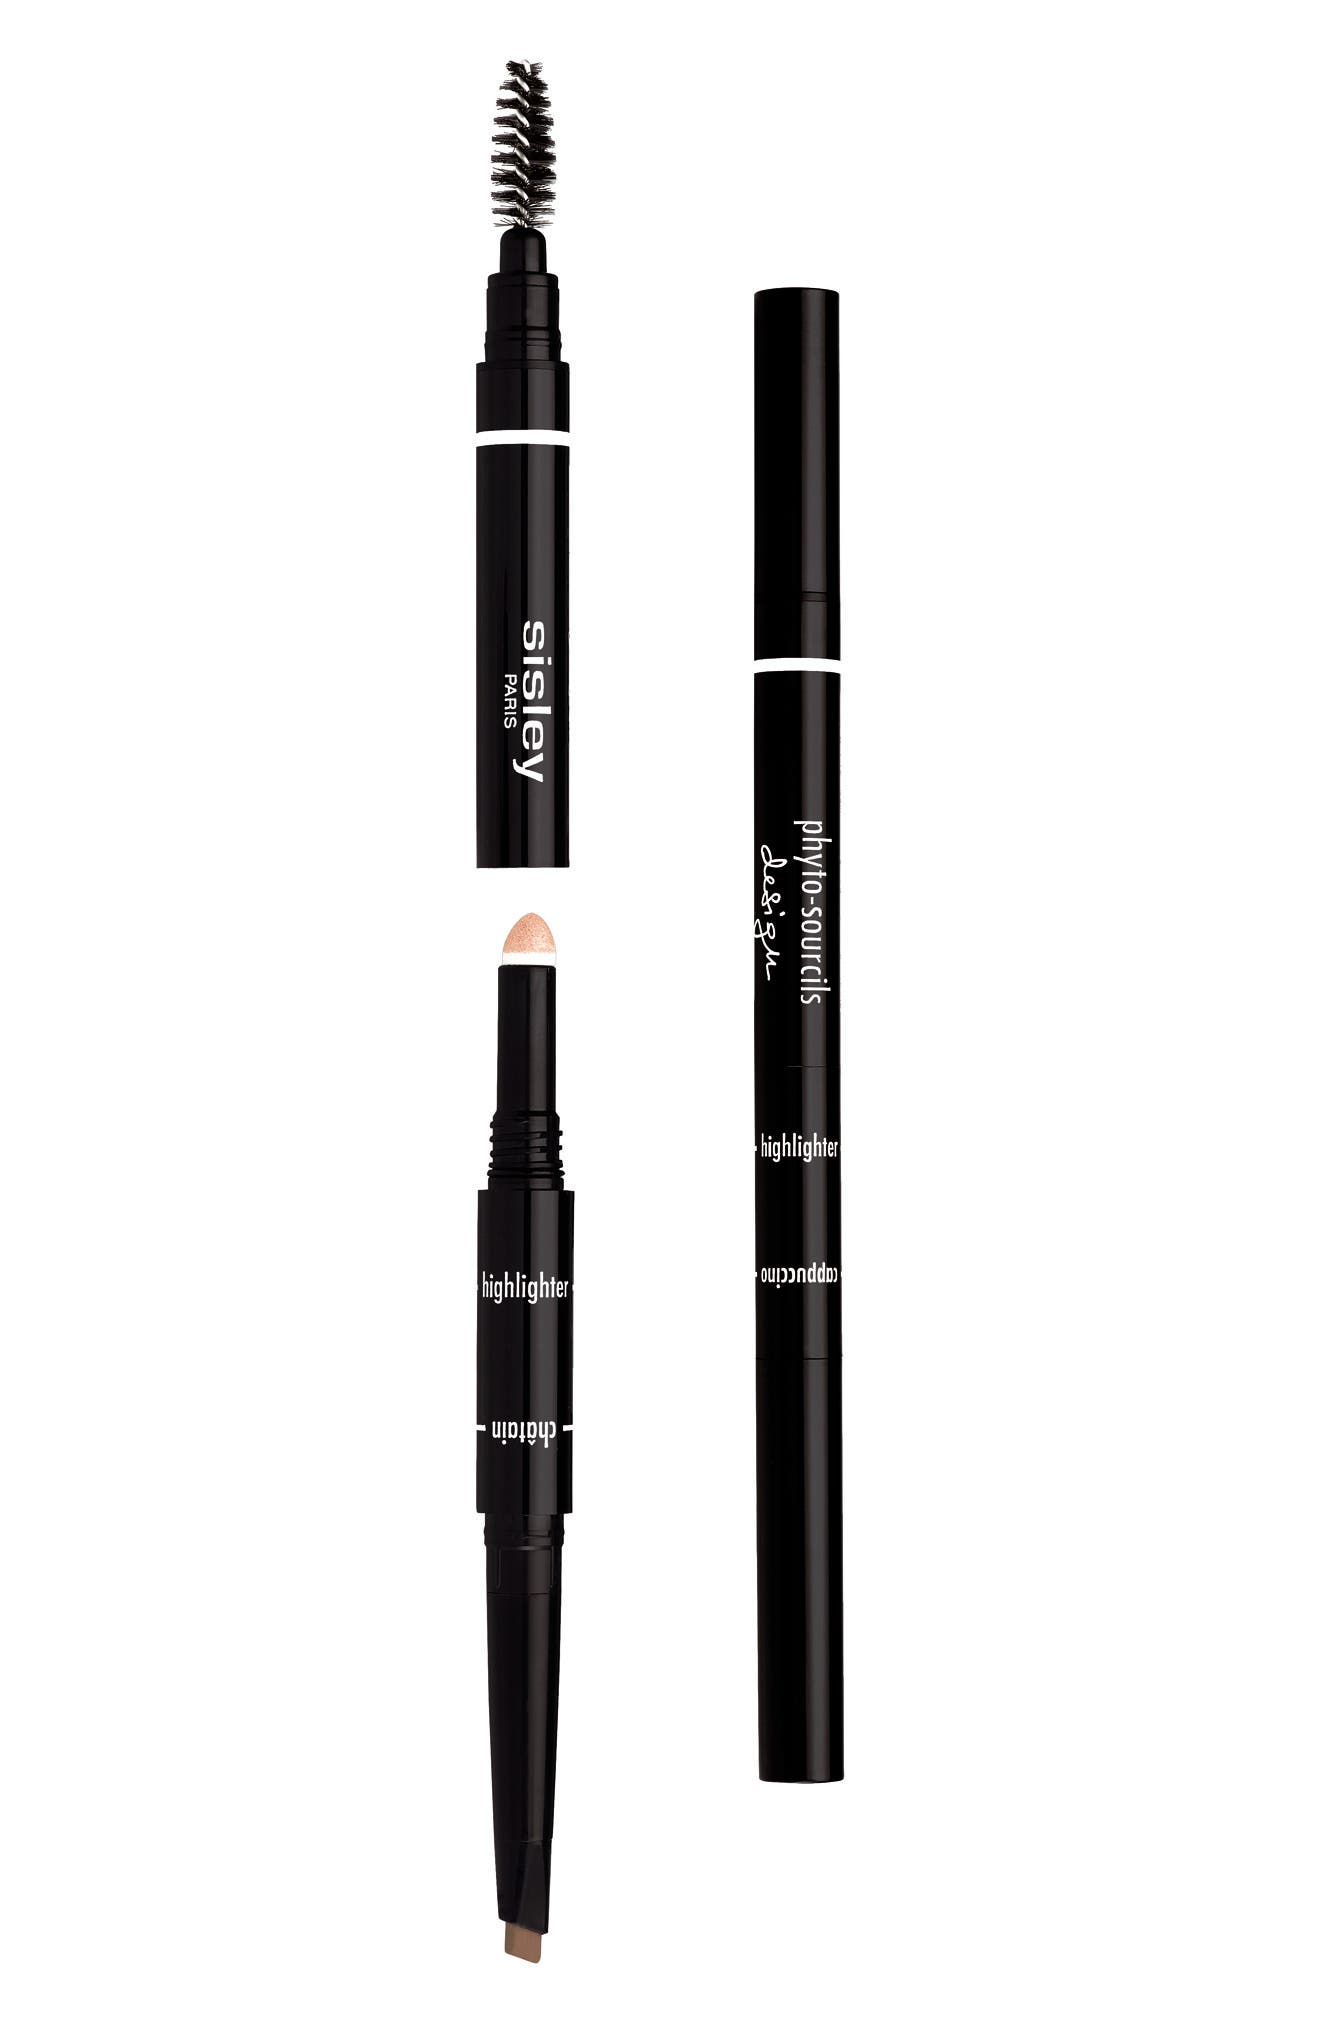 Sisley Paris Phyto-Sourcils Design 3-in-1 Eyebrow Pencil